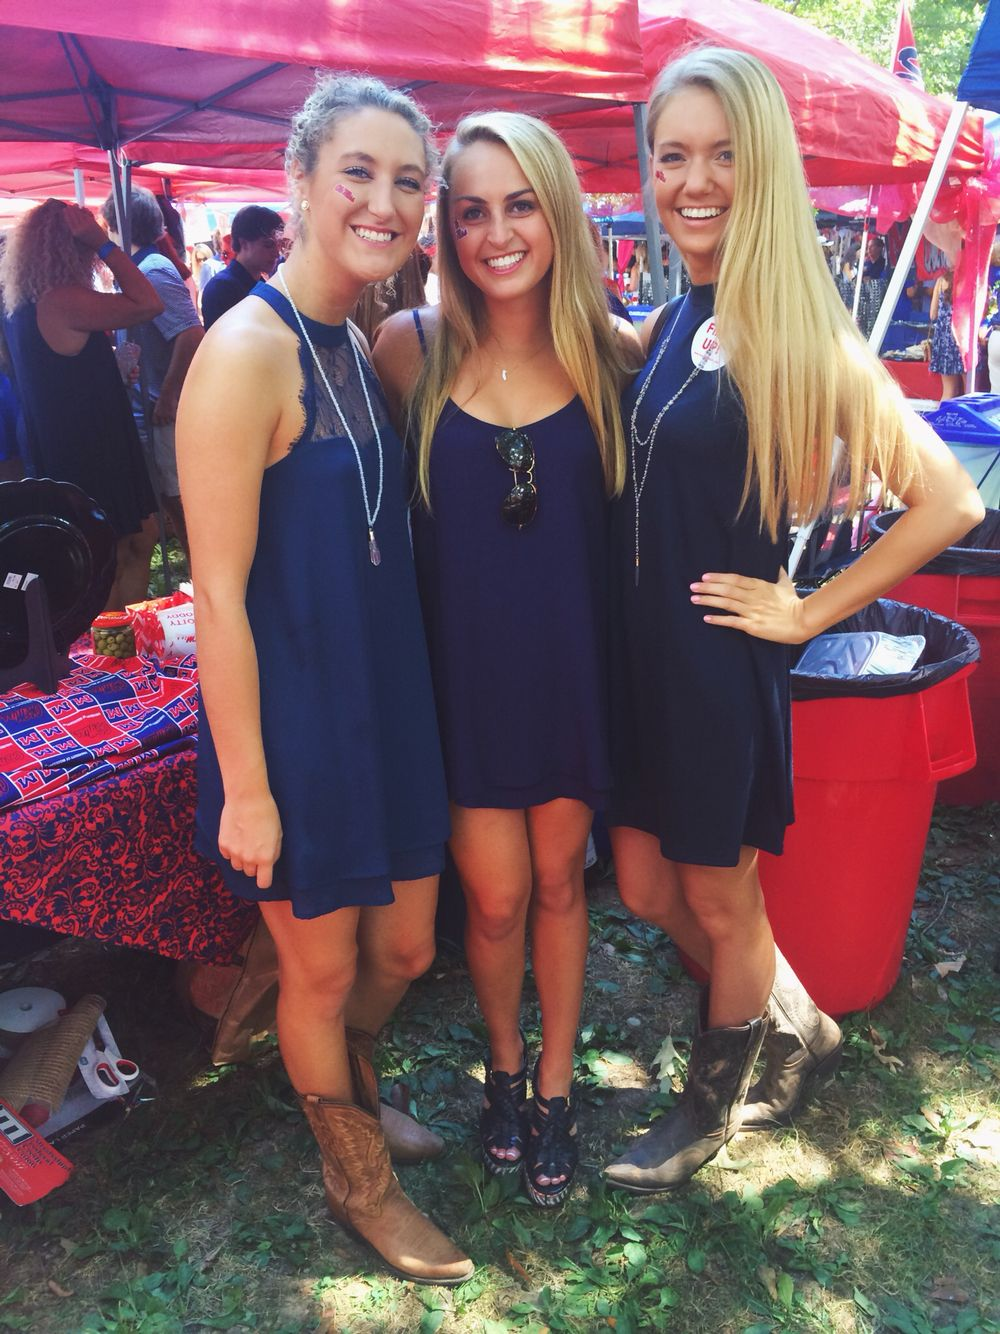 Ole miss gameday colors 2015 - Ole Miss Game Day Outfits 2015